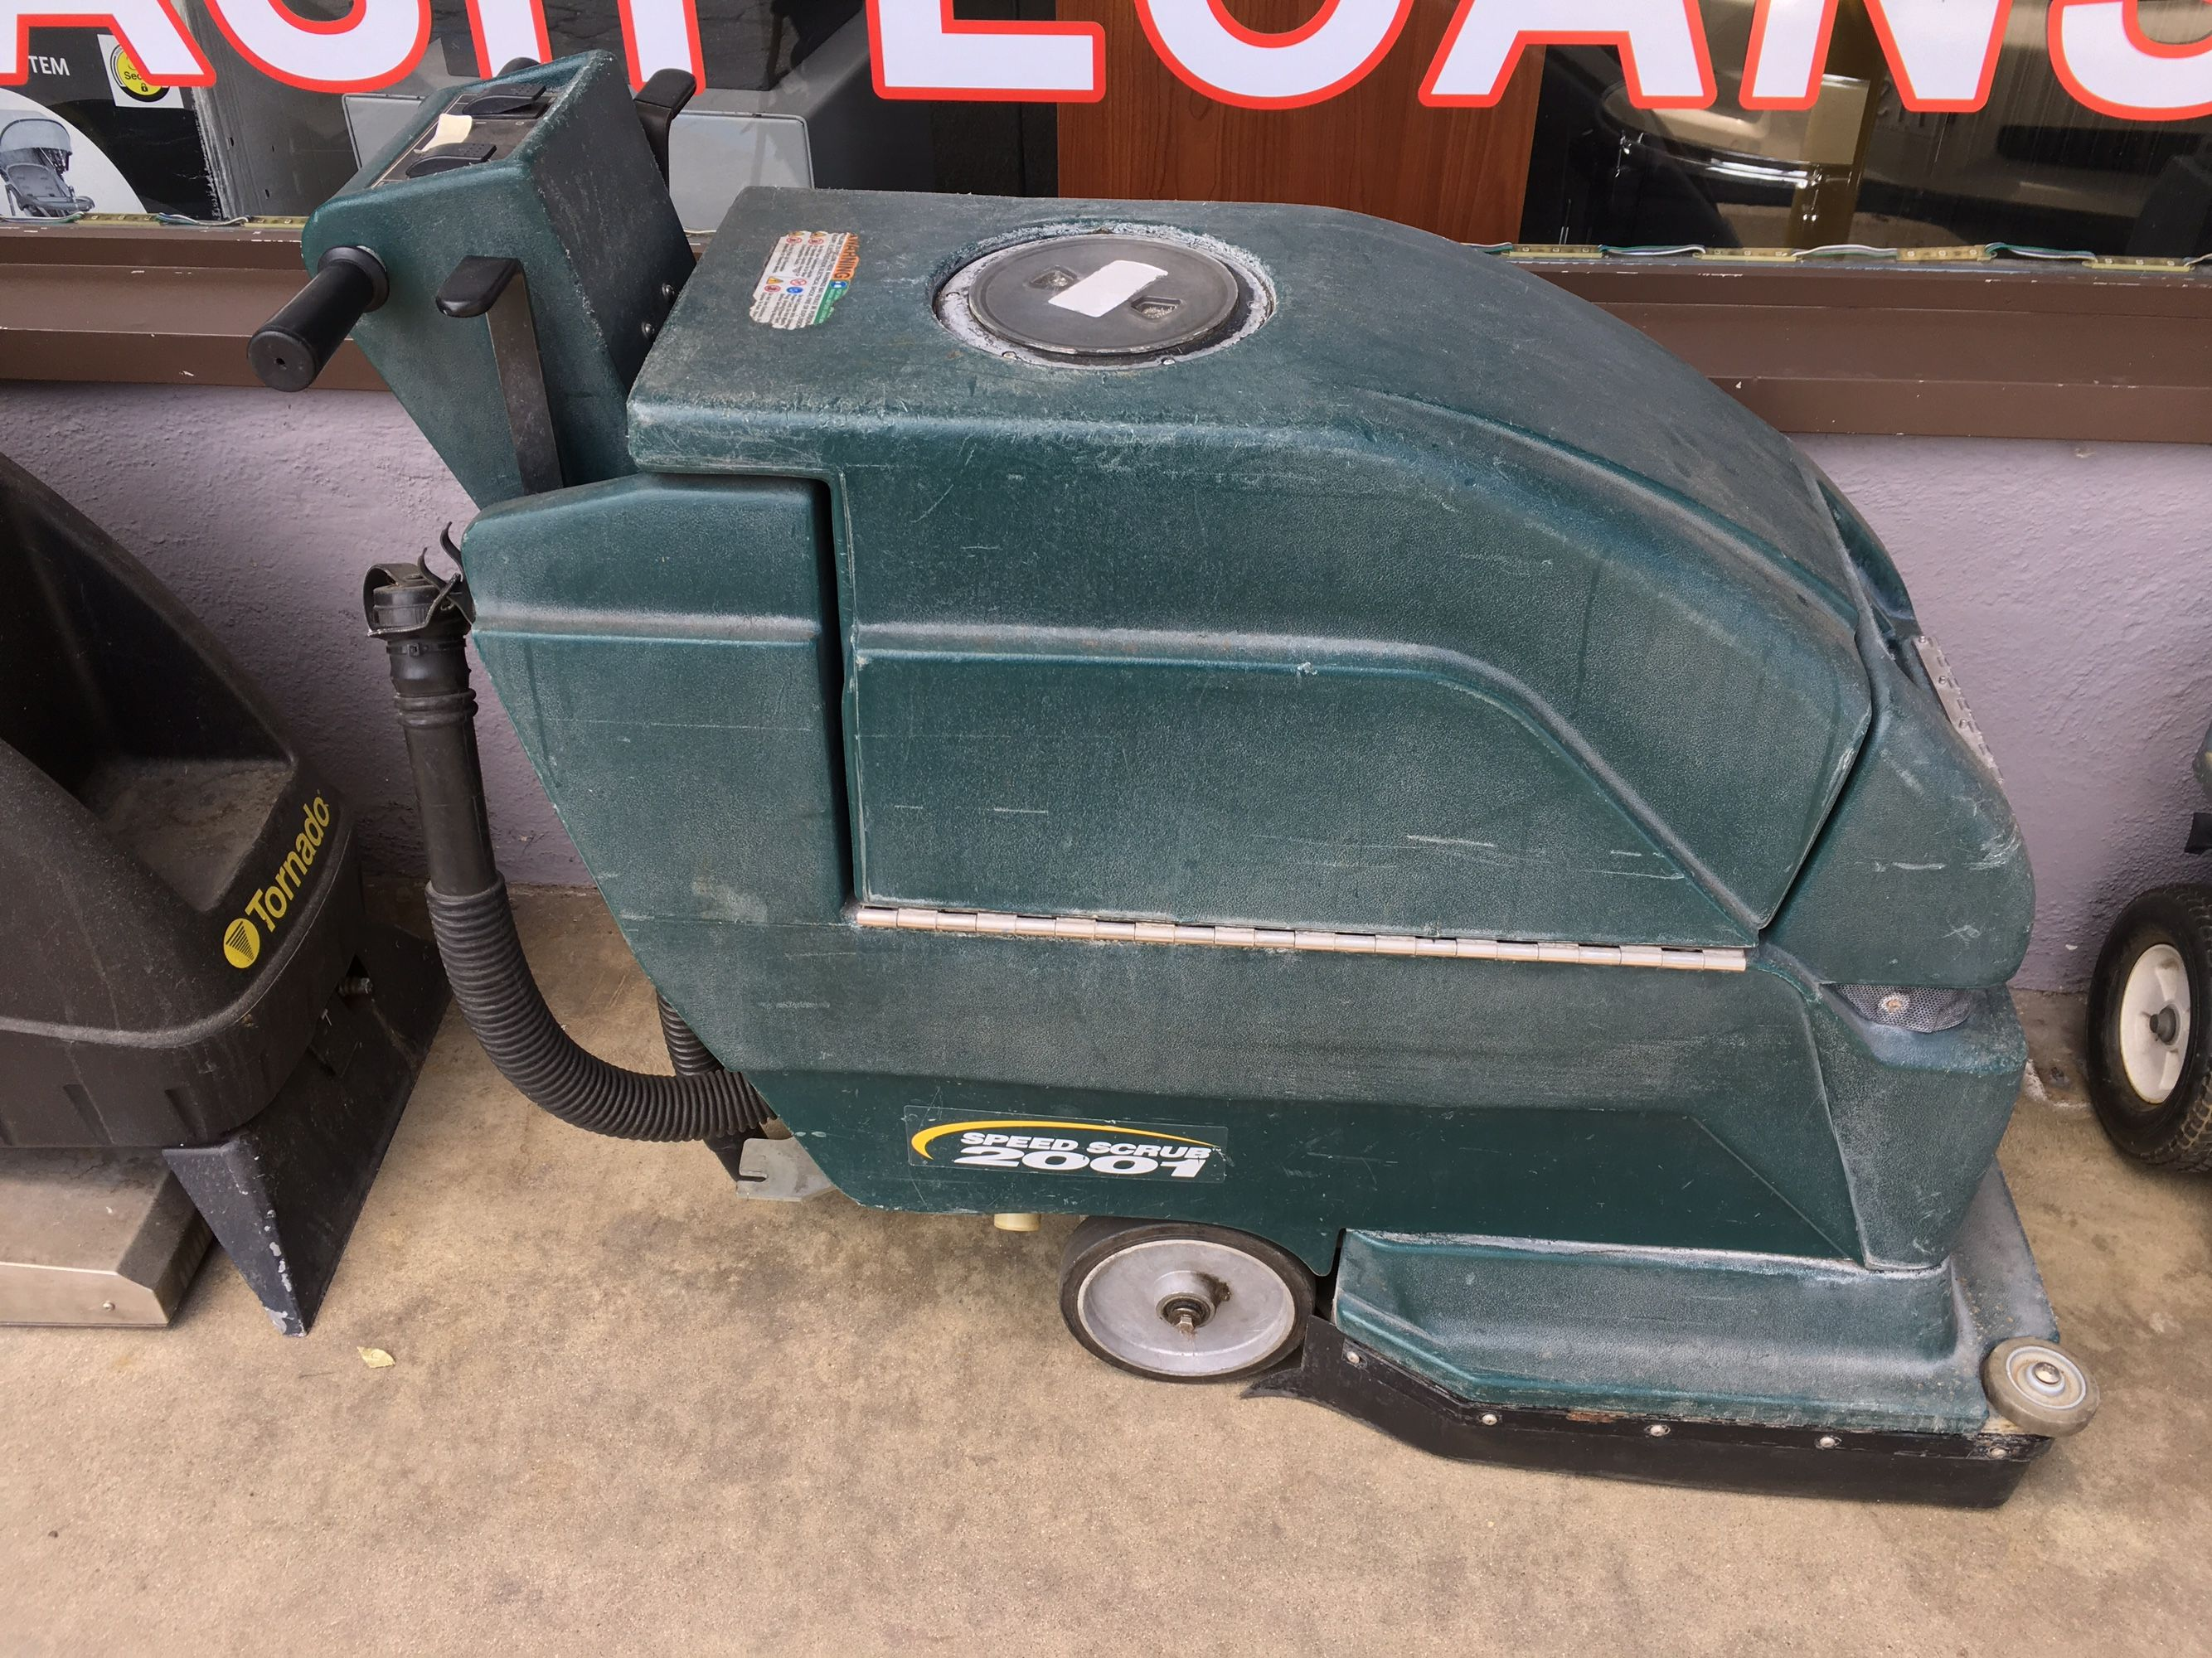 """CARPET CLEANER SPEED SCRUB 2001 20"""" DISK WITH SCRUBBER AND TOP LID"""